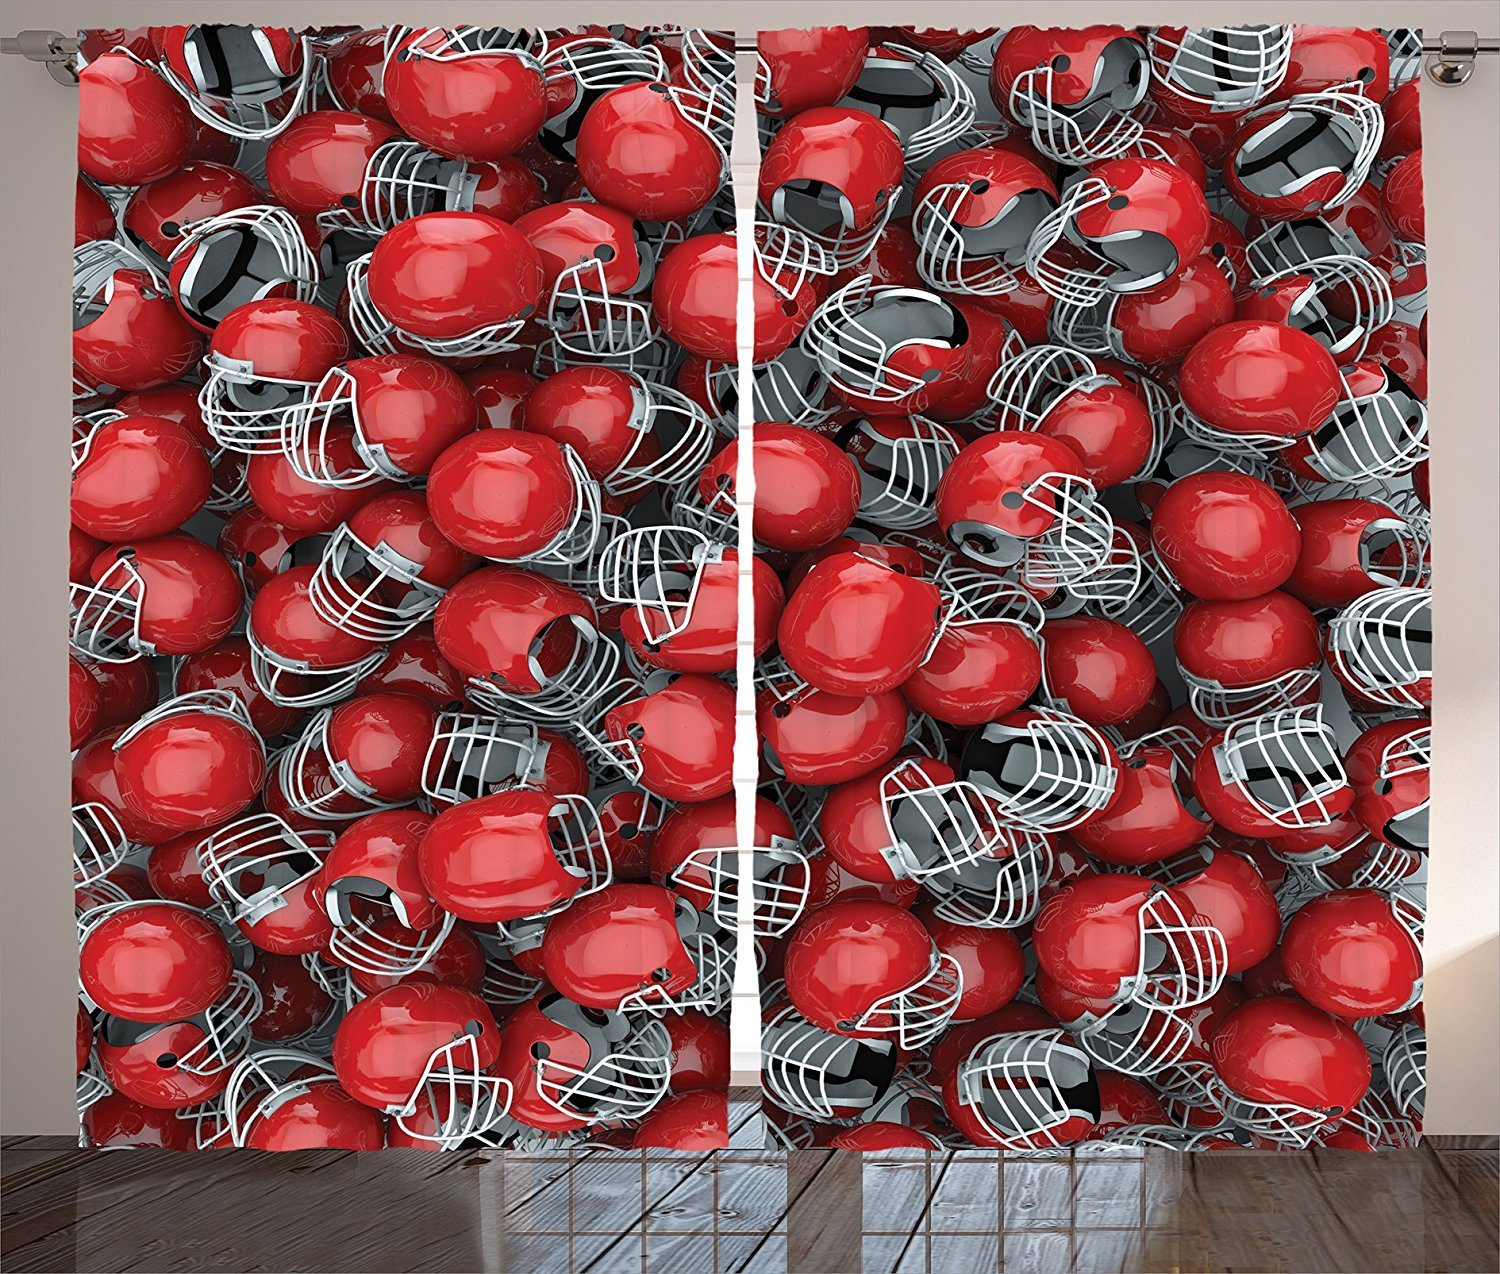 Sports Decor Collection College Football Helmets Headgear Competition Defense Sportsman Image Pattern Living Room Bedroom Curtain 2 Panels Set Red and Dimgray by sophiehome (Image #1)